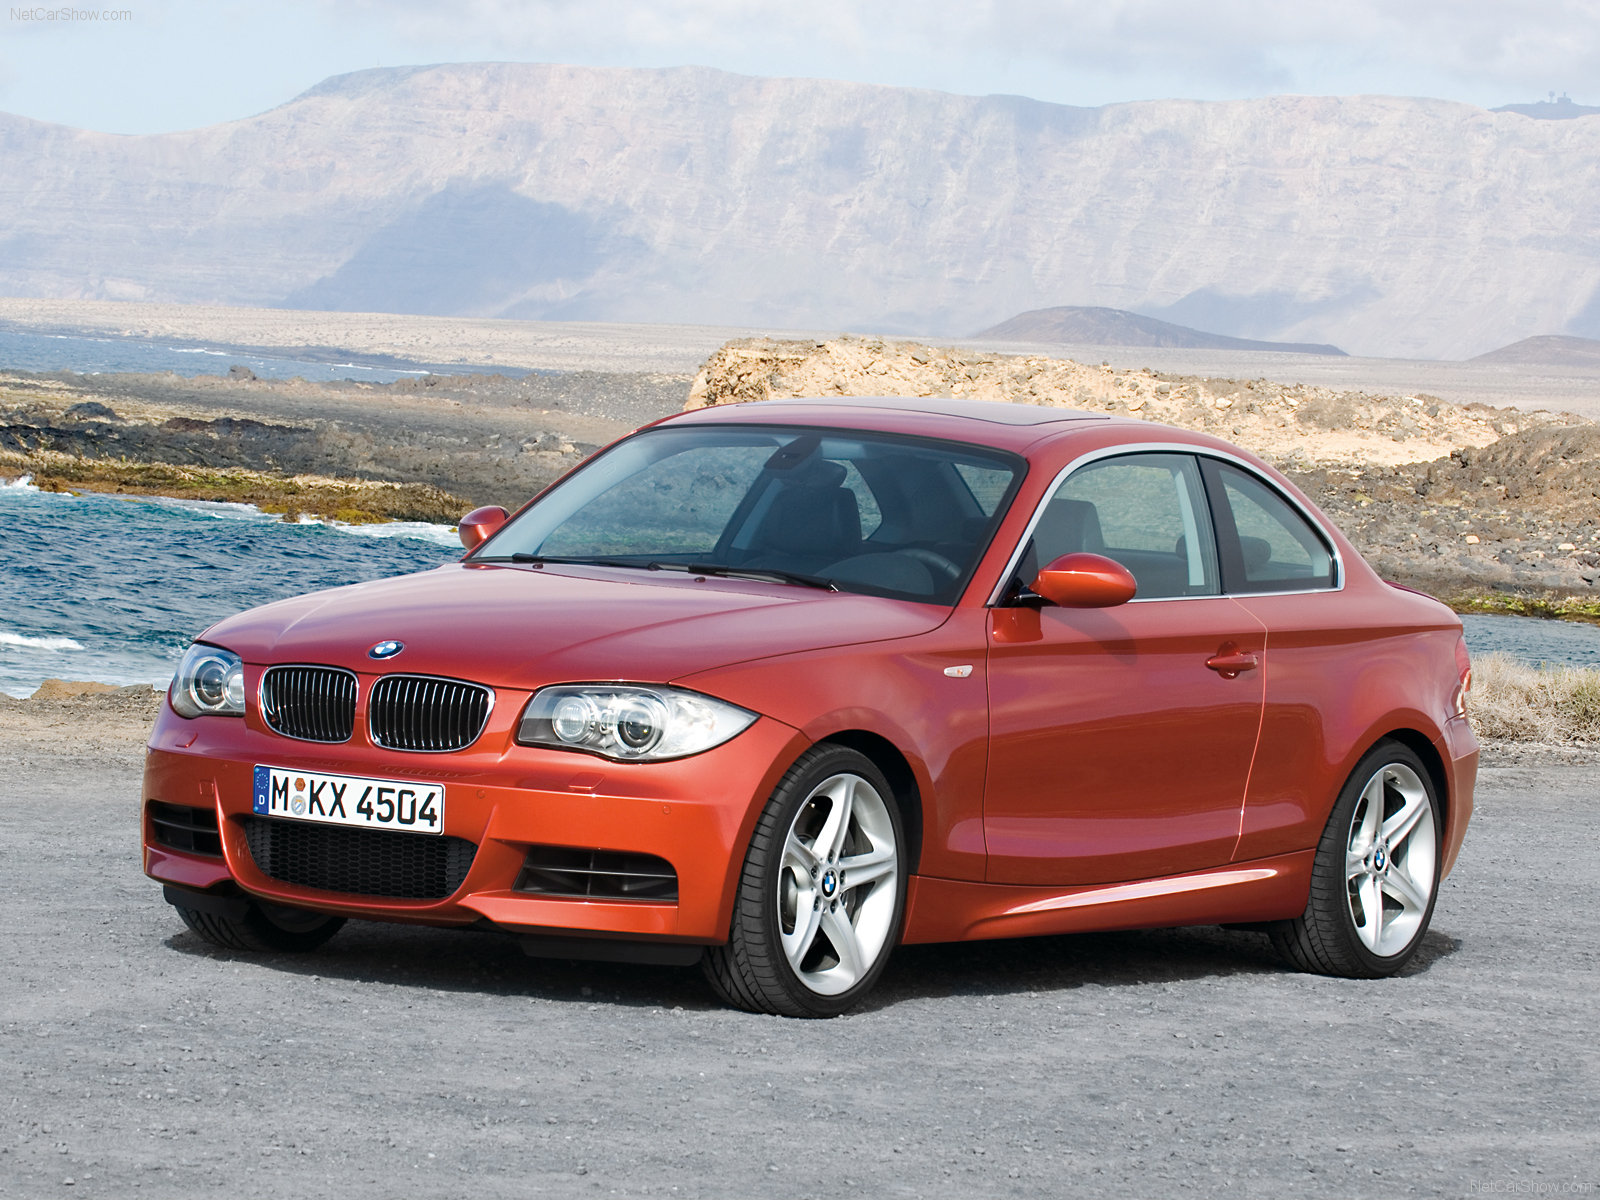 bmw 1 series coupe e82 picture 45170 bmw photo gallery. Black Bedroom Furniture Sets. Home Design Ideas